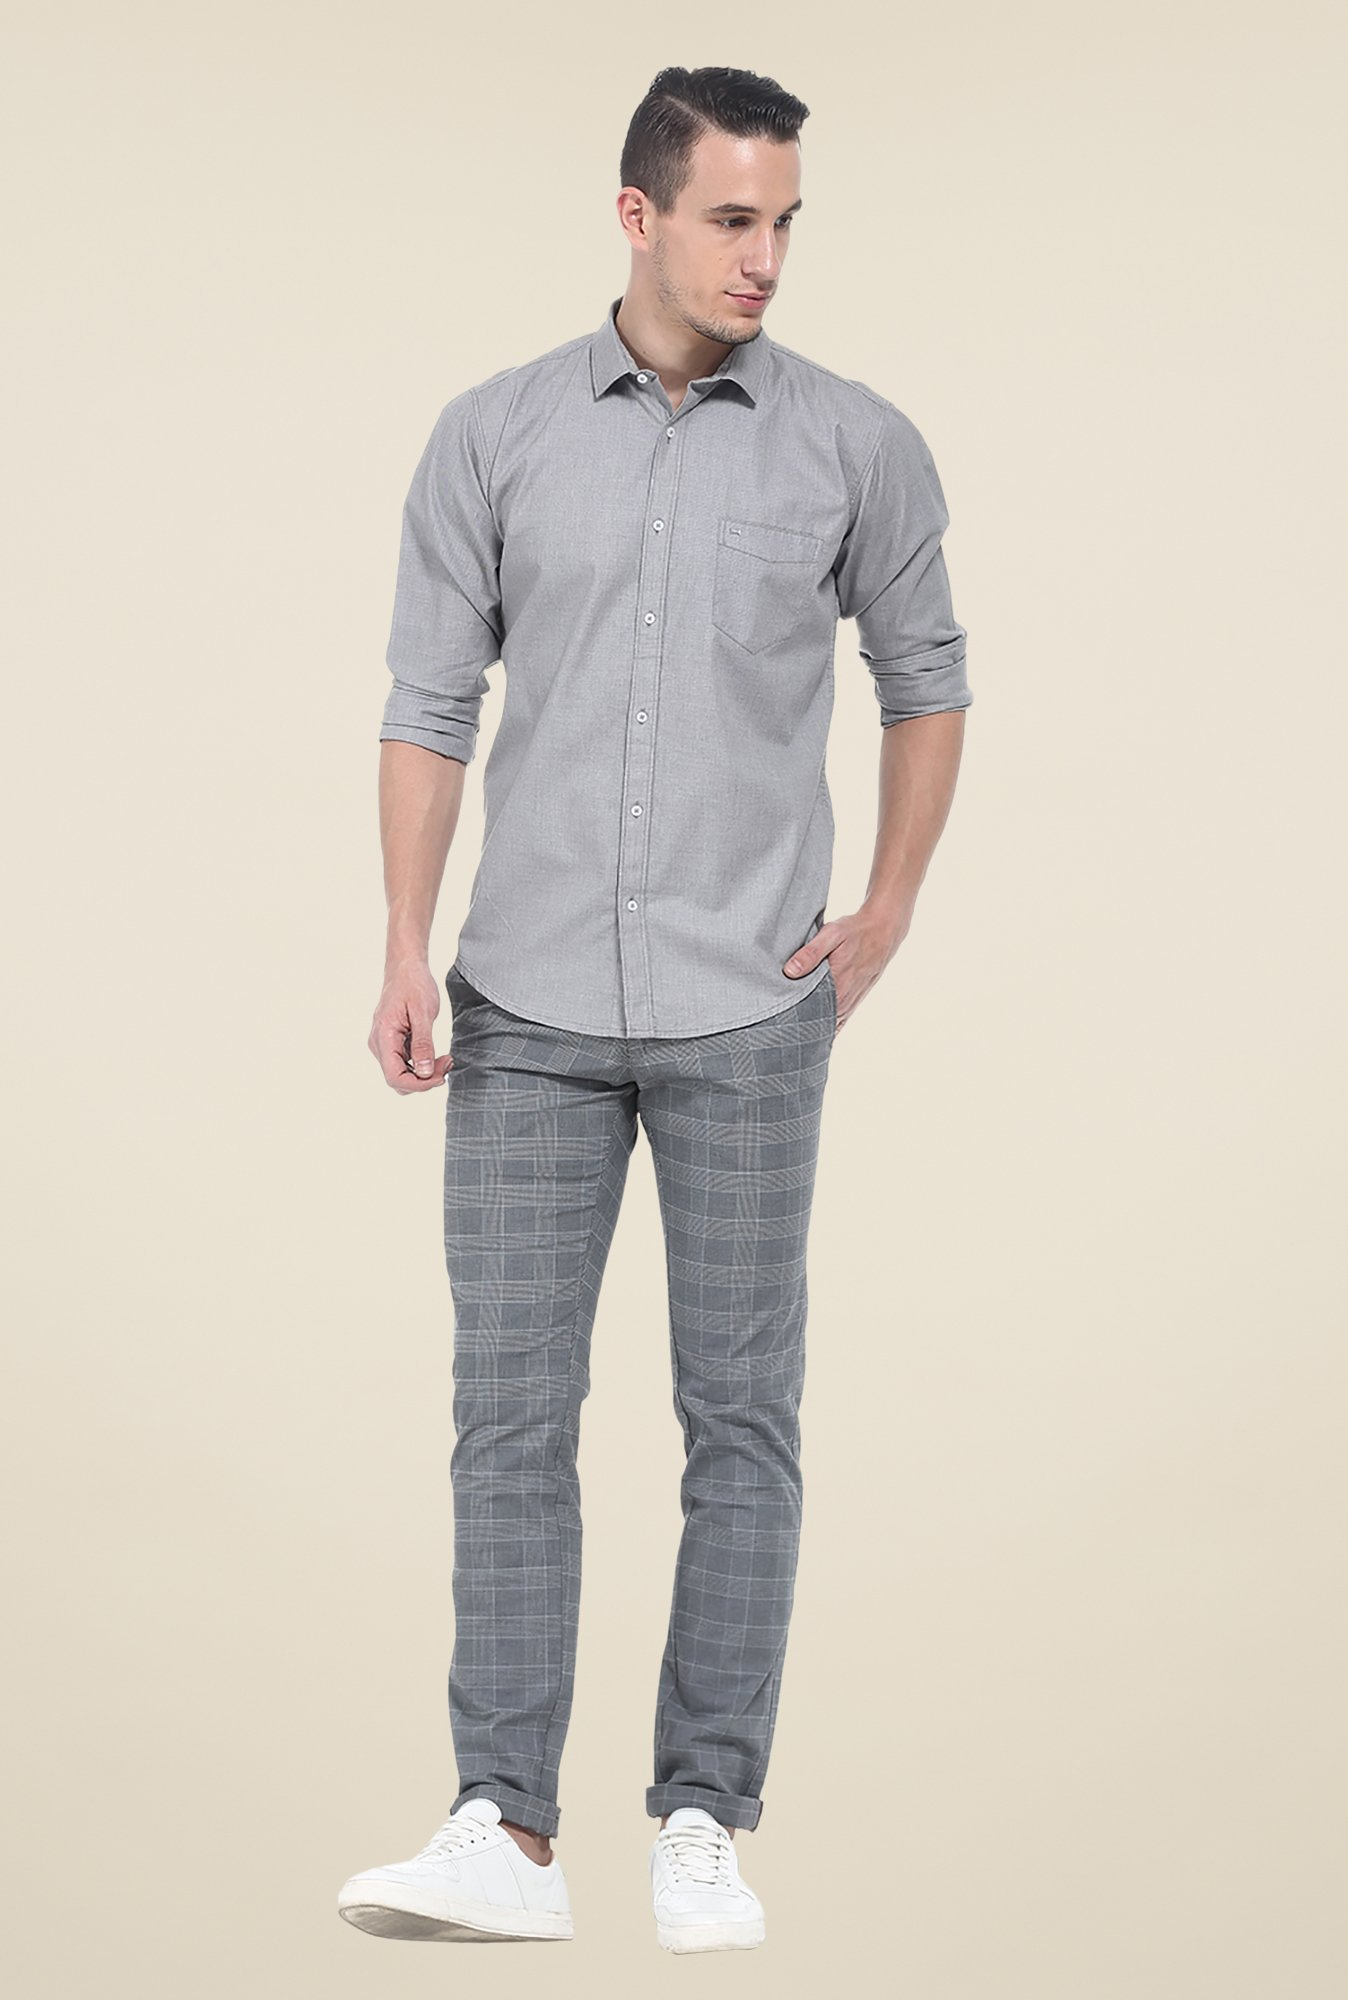 Basics Grey Textured Cotton Shirt